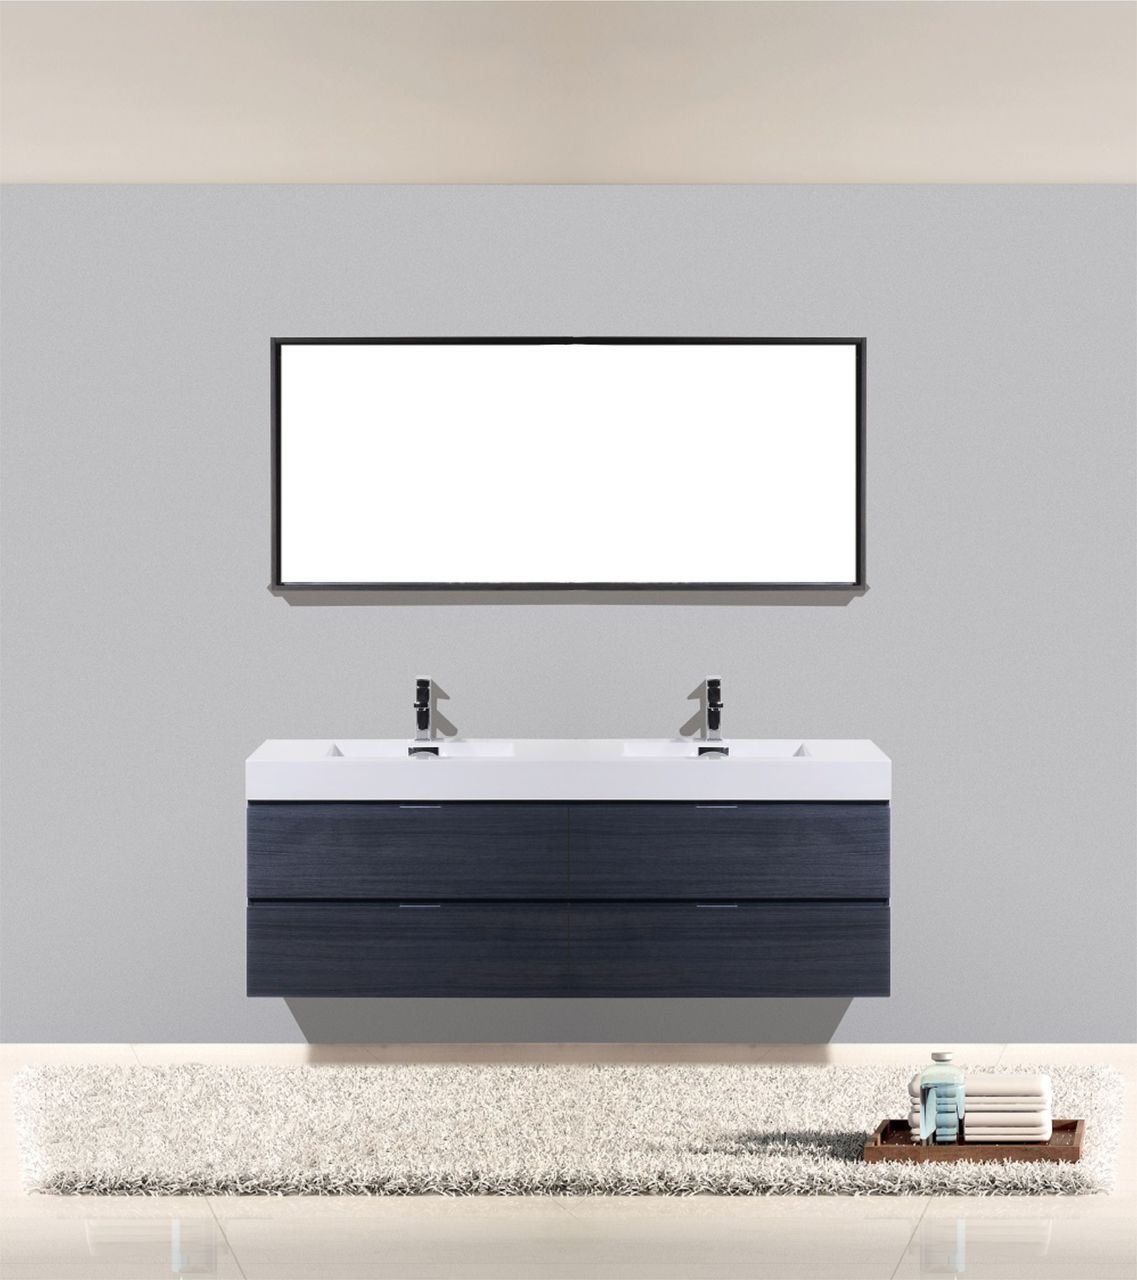 bliss 71 high gloss gray oak wall mount double sink modern bathroom vanity los